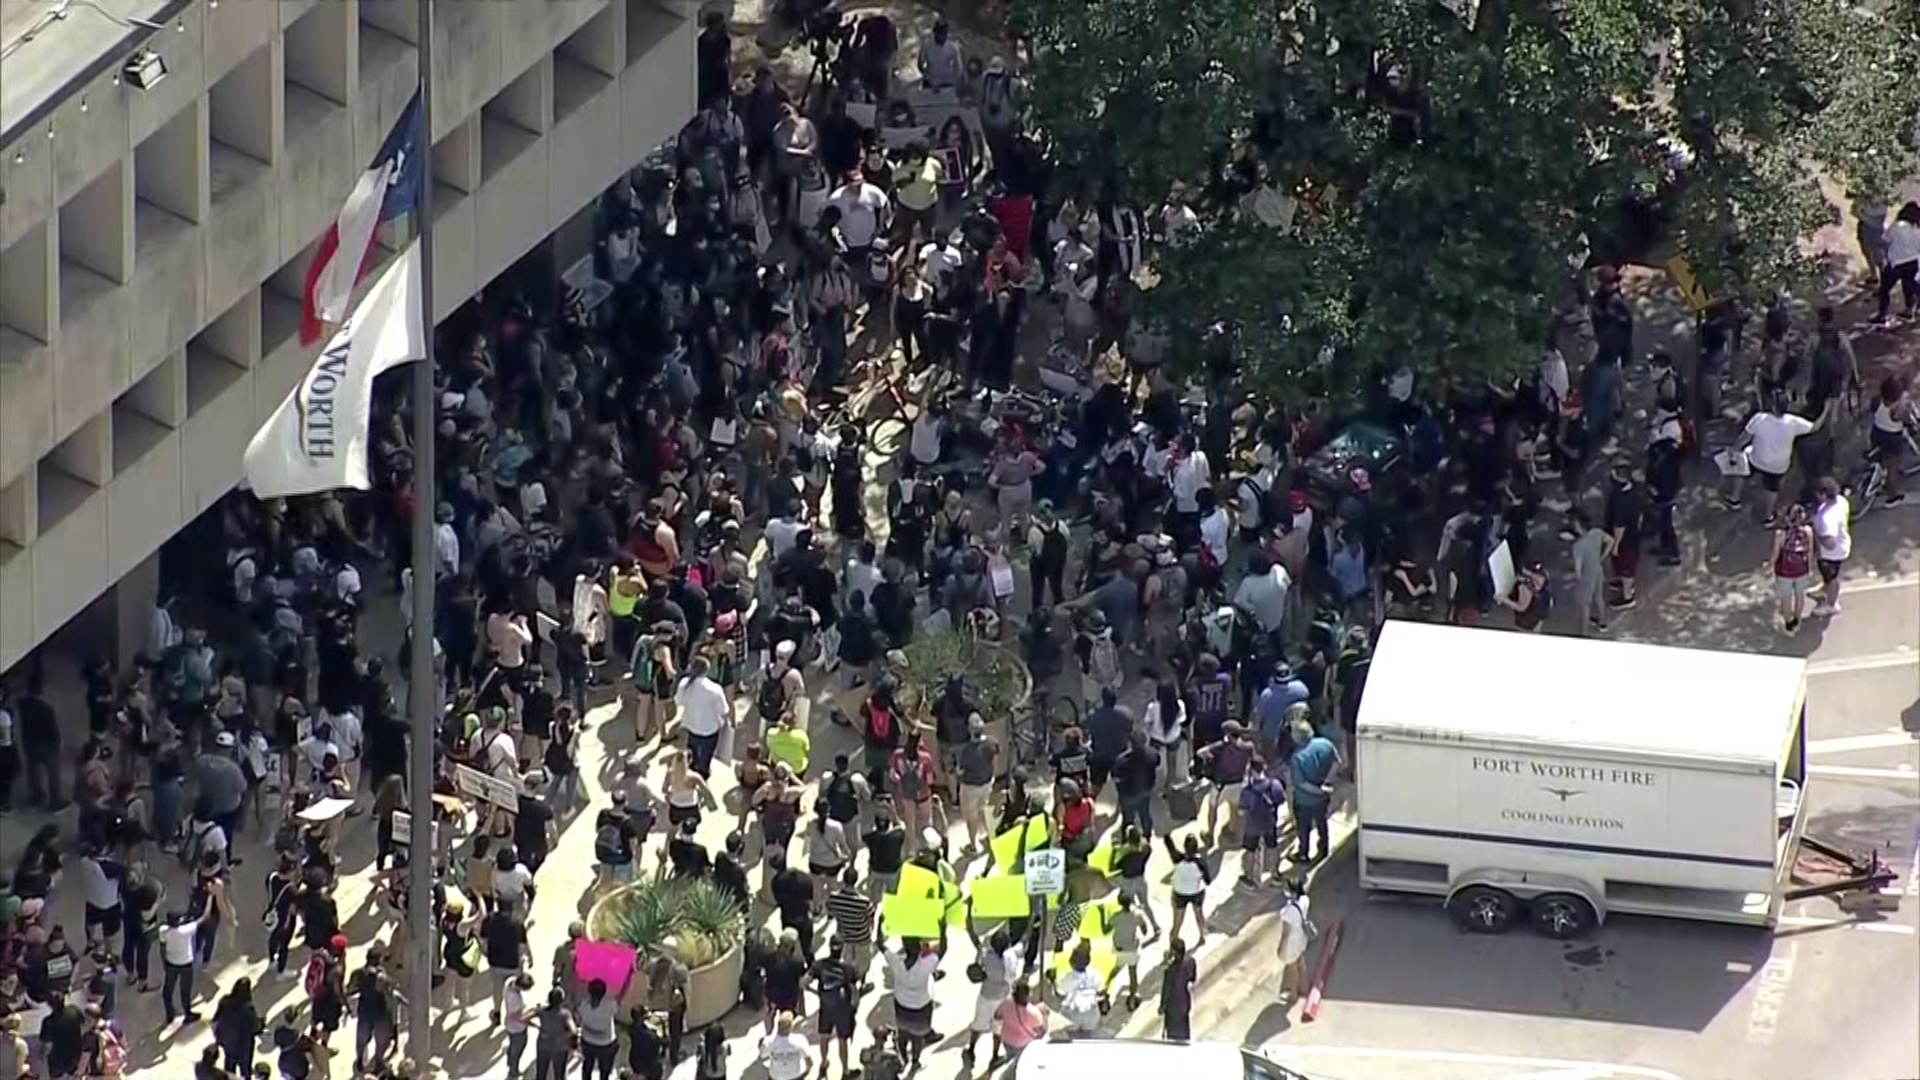 Protesters Take Calls For Justice, Change to Fort Worth City Hall